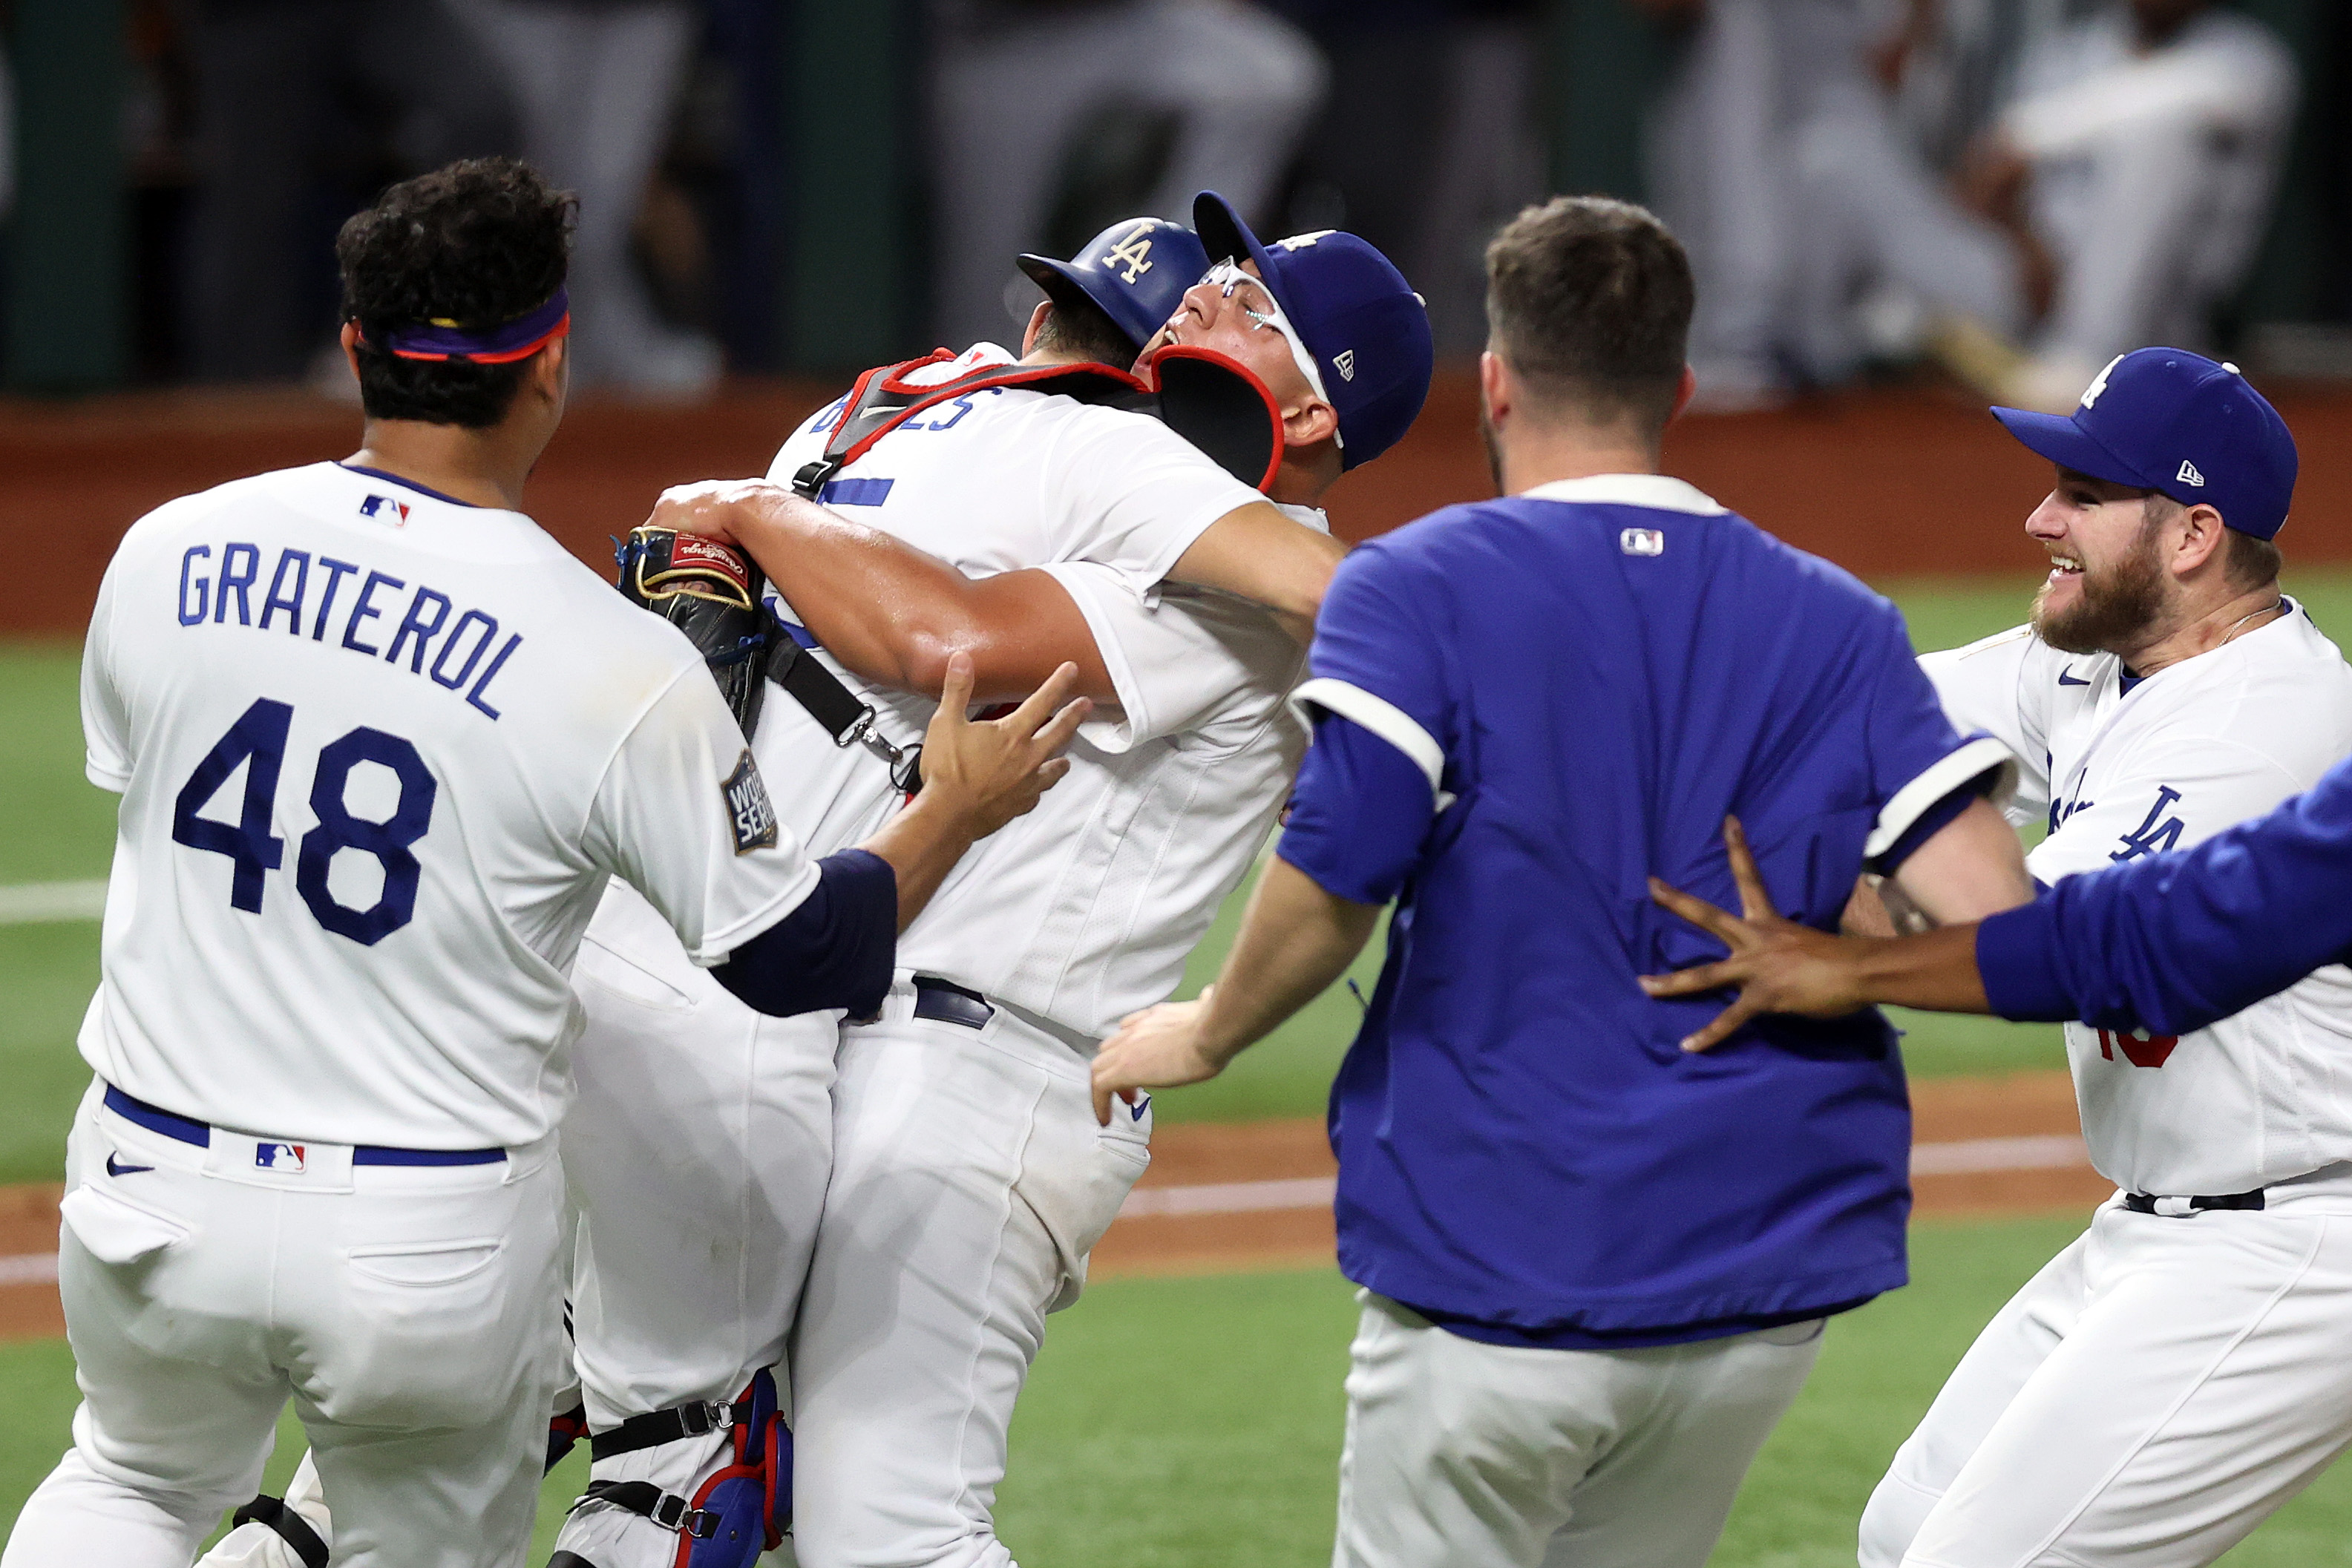 Los Angeles Dodgers Team Celebrate Moments After They Win The 2020 World Series 8x10 Photo Picture